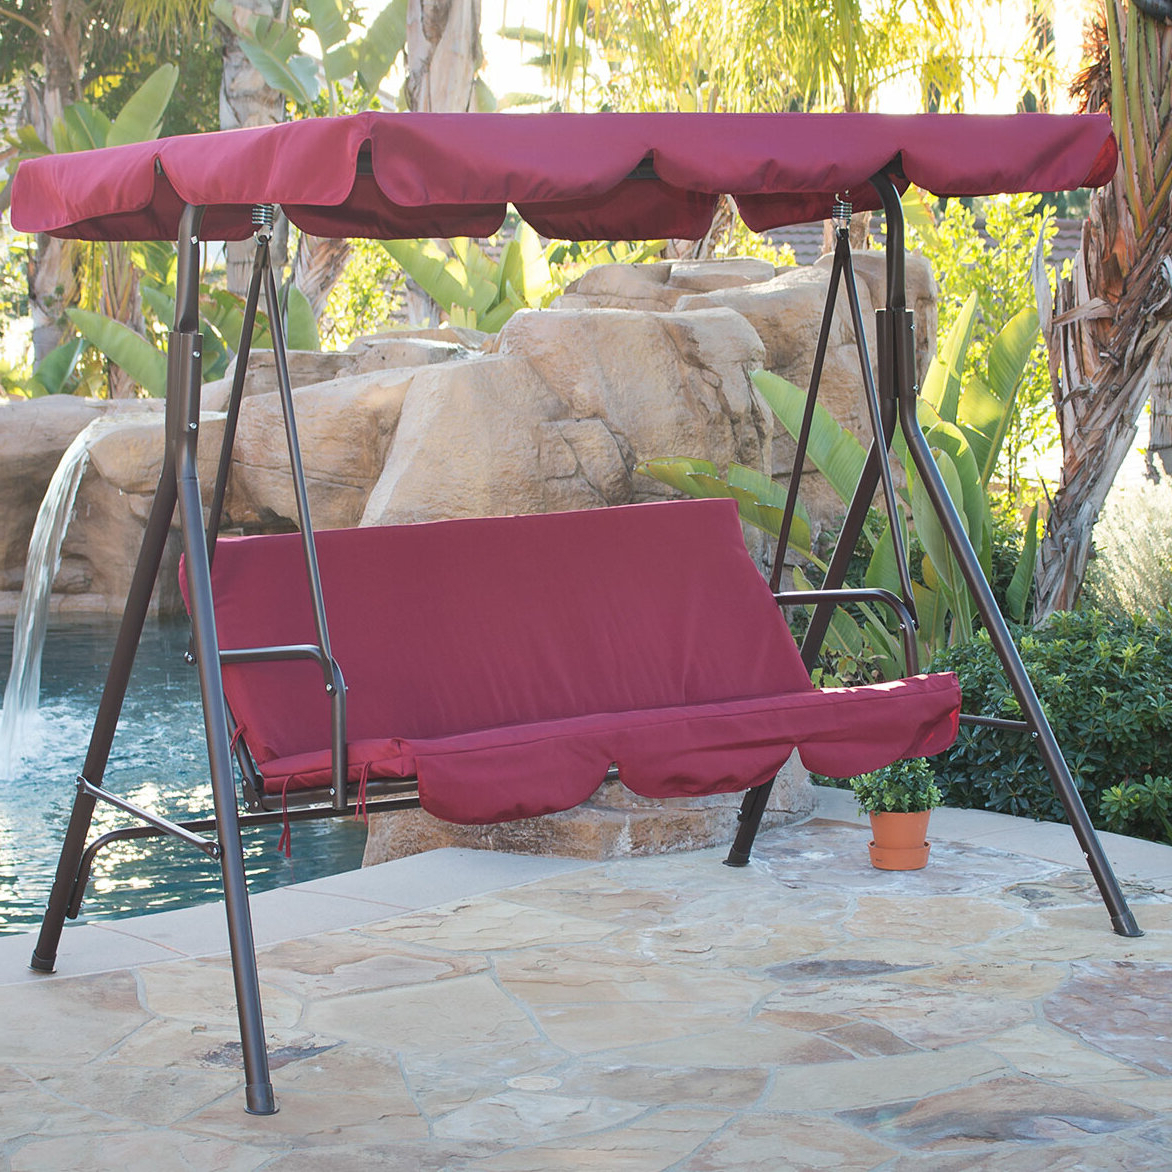 Wayfair Throughout Current Patio Porch Swings With Stand (Gallery 17 of 30)